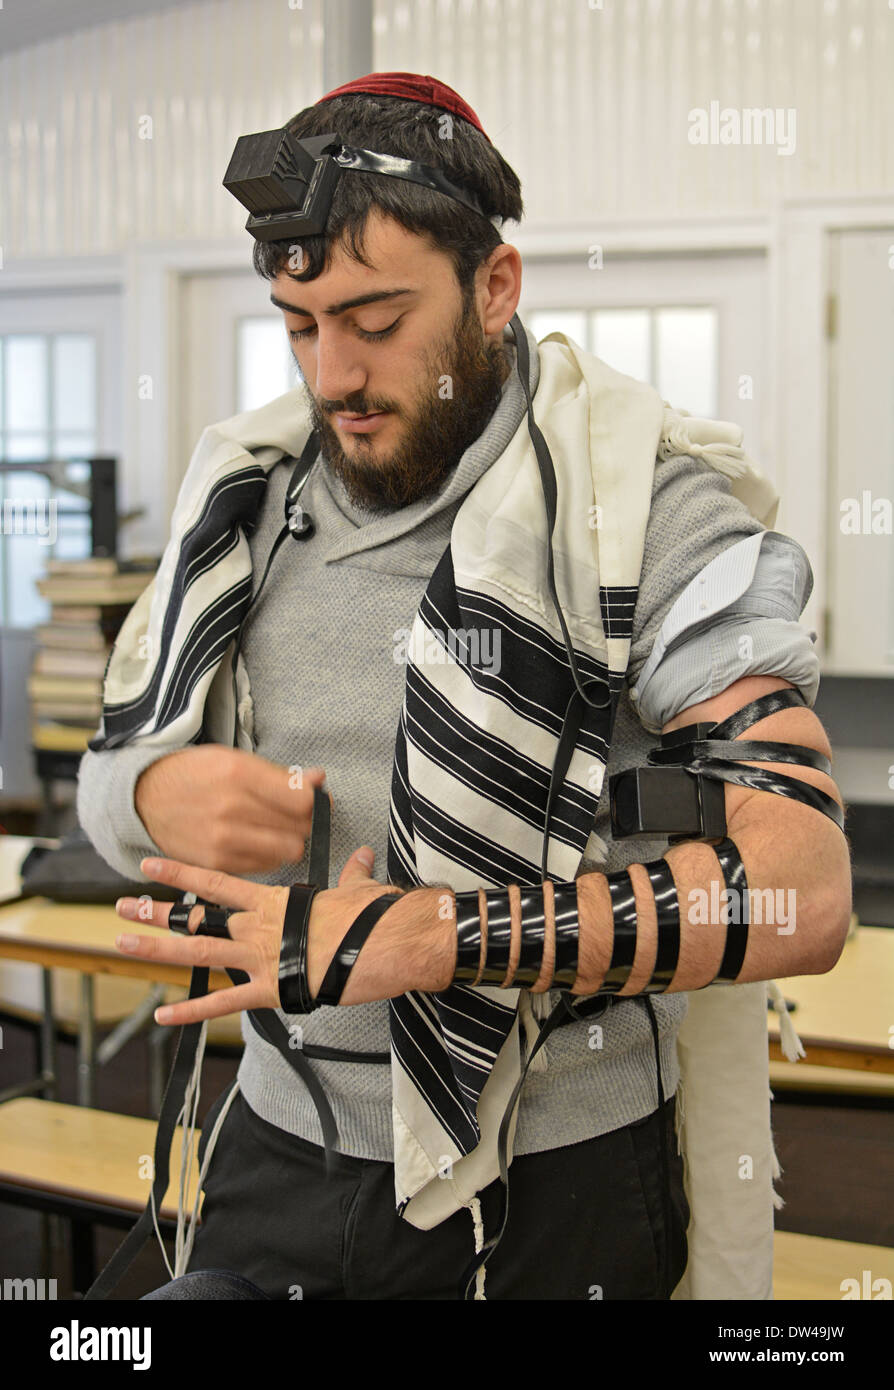 Religious Jewish young man putting on phylacteries - teffilin - at morning services at the Ohel in Cambria Heights, Queens, NY - Stock Image